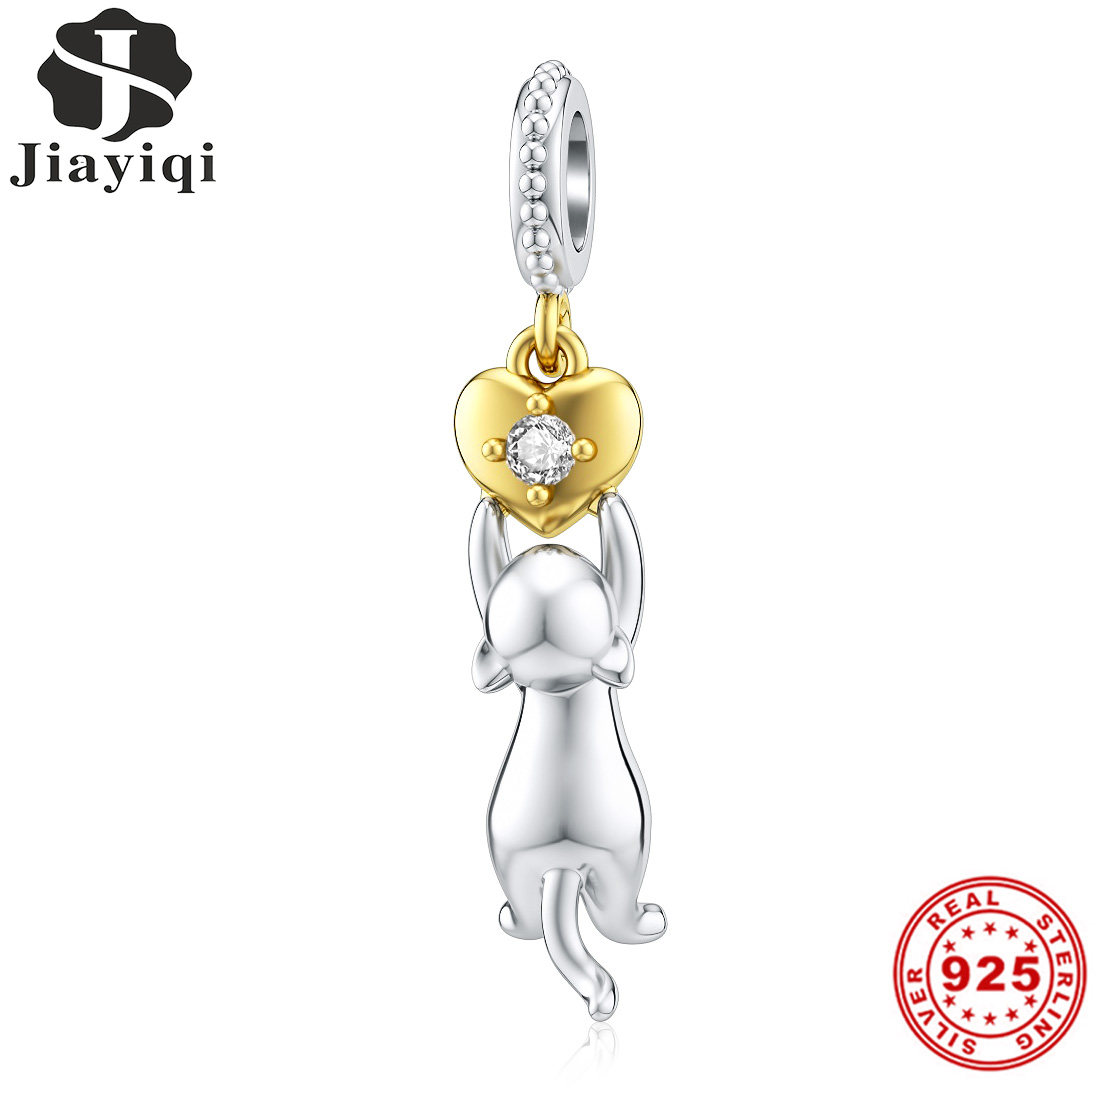 Jiayiqi 925 Silver Charms Fit Pandora Bracelet DIY Necklace Making Cute Cat Grab Heart Bead Sterling Silver Fine Jewelry Finding